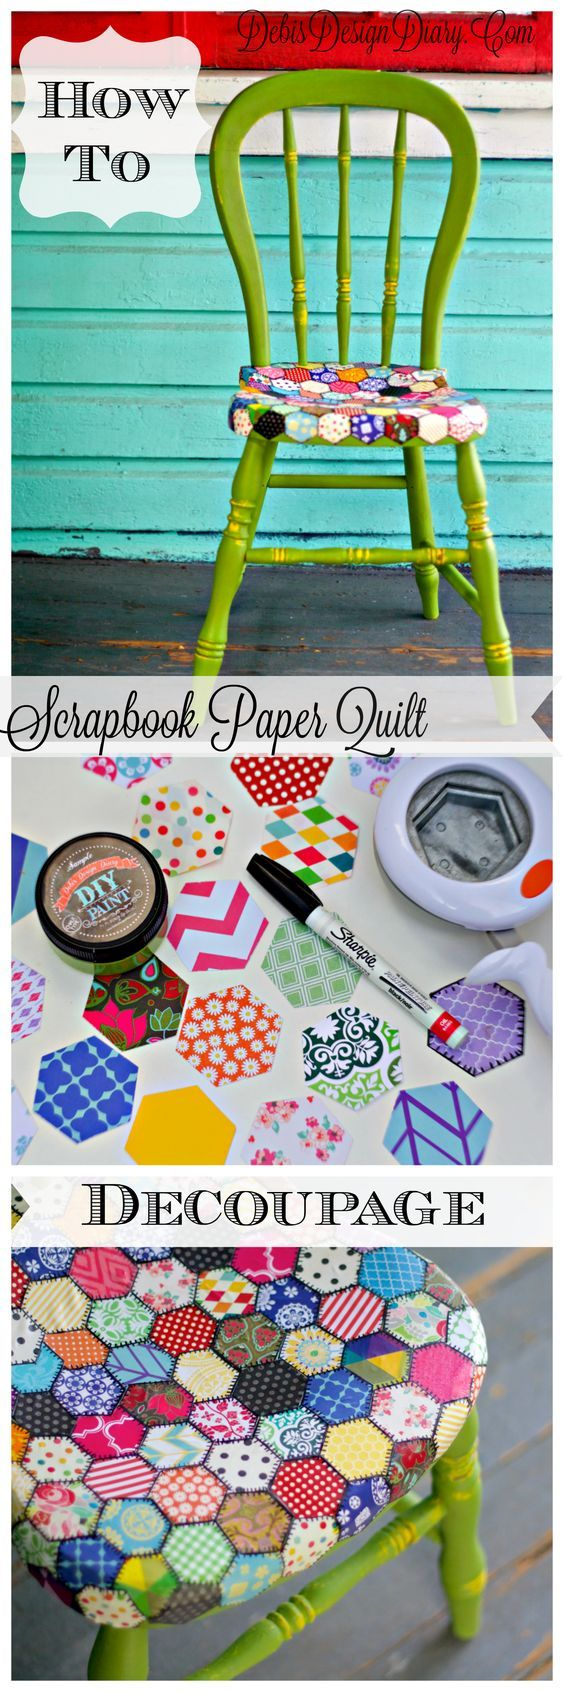 How to put scrapbook paper on wood - How To Decoupage A Quilt Pattern With Scrapbook Paper